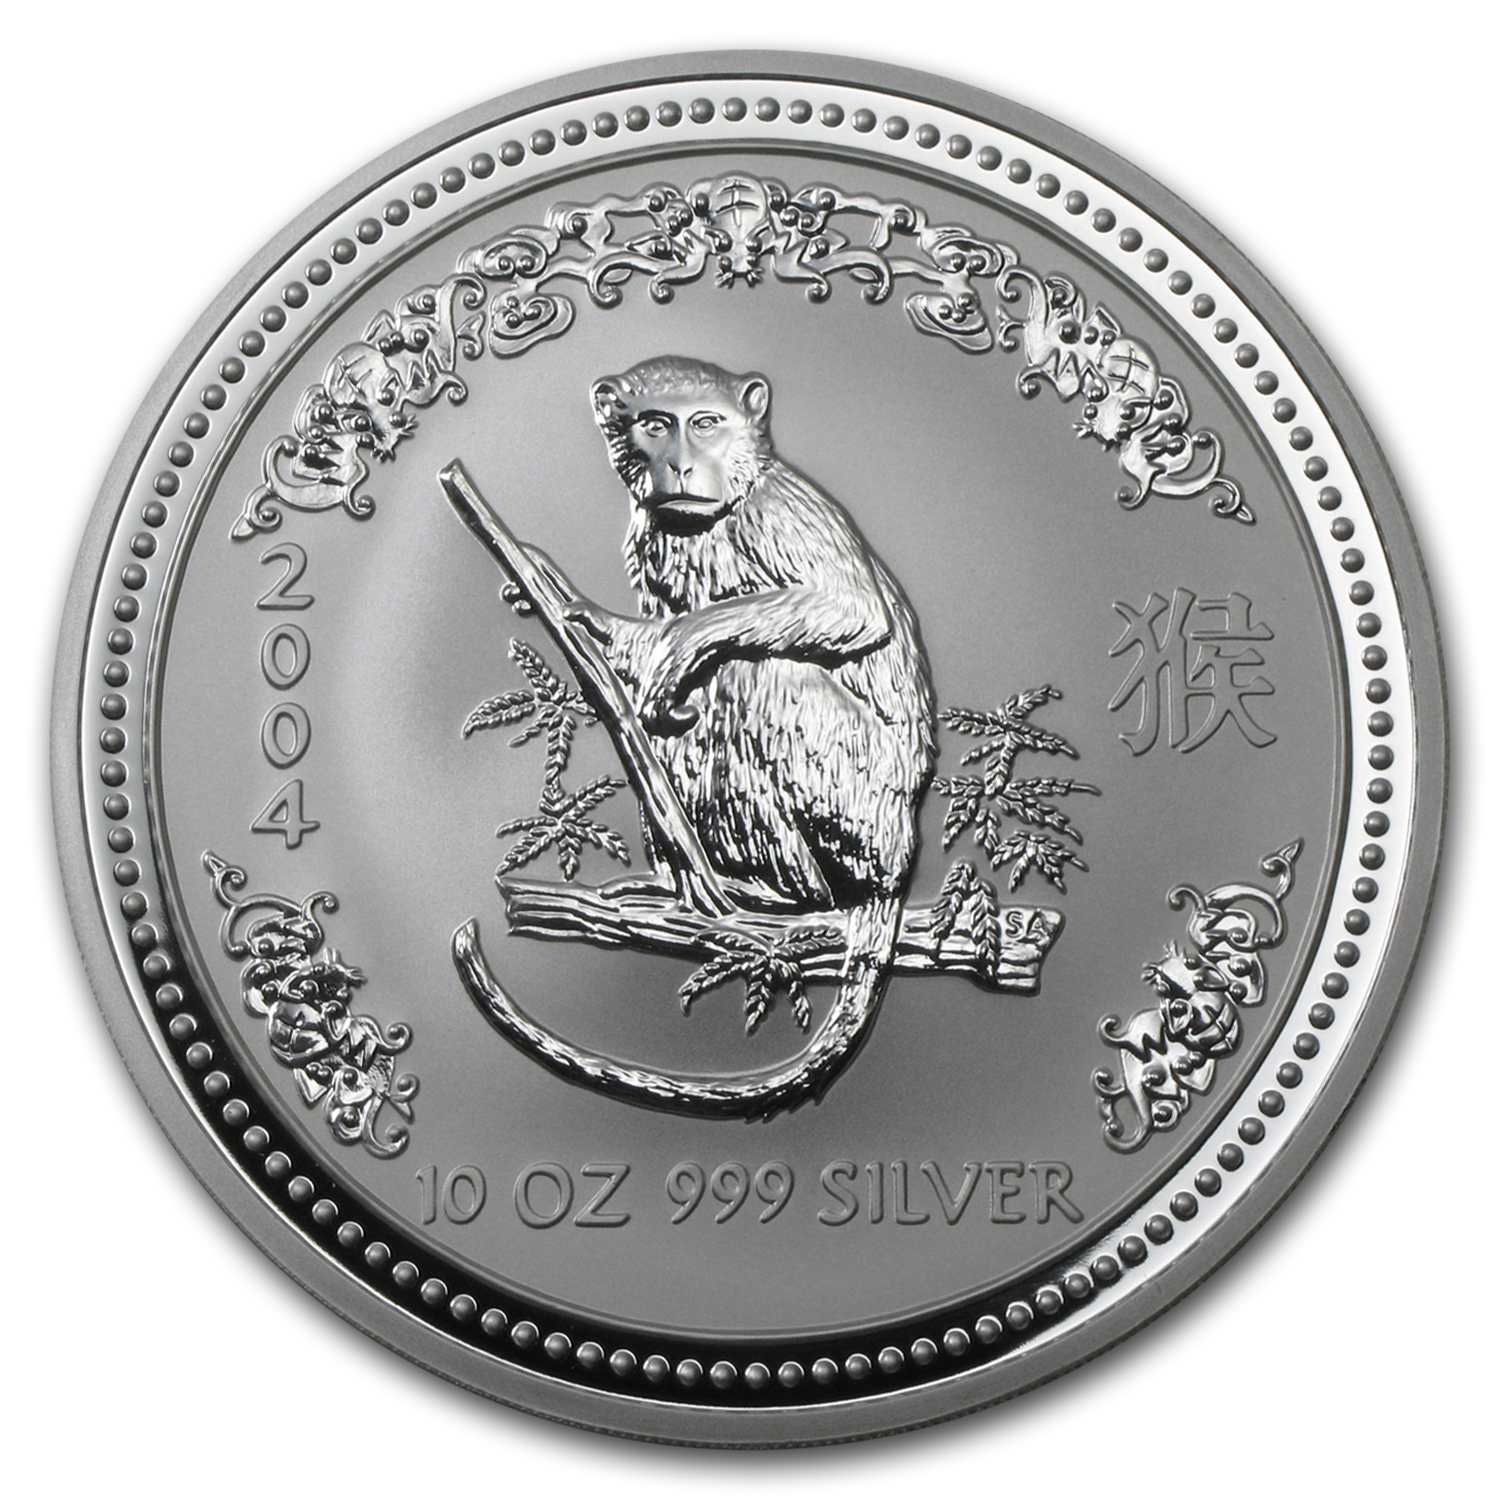 2004 10 oz Silver Australian Year of the Monkey BU